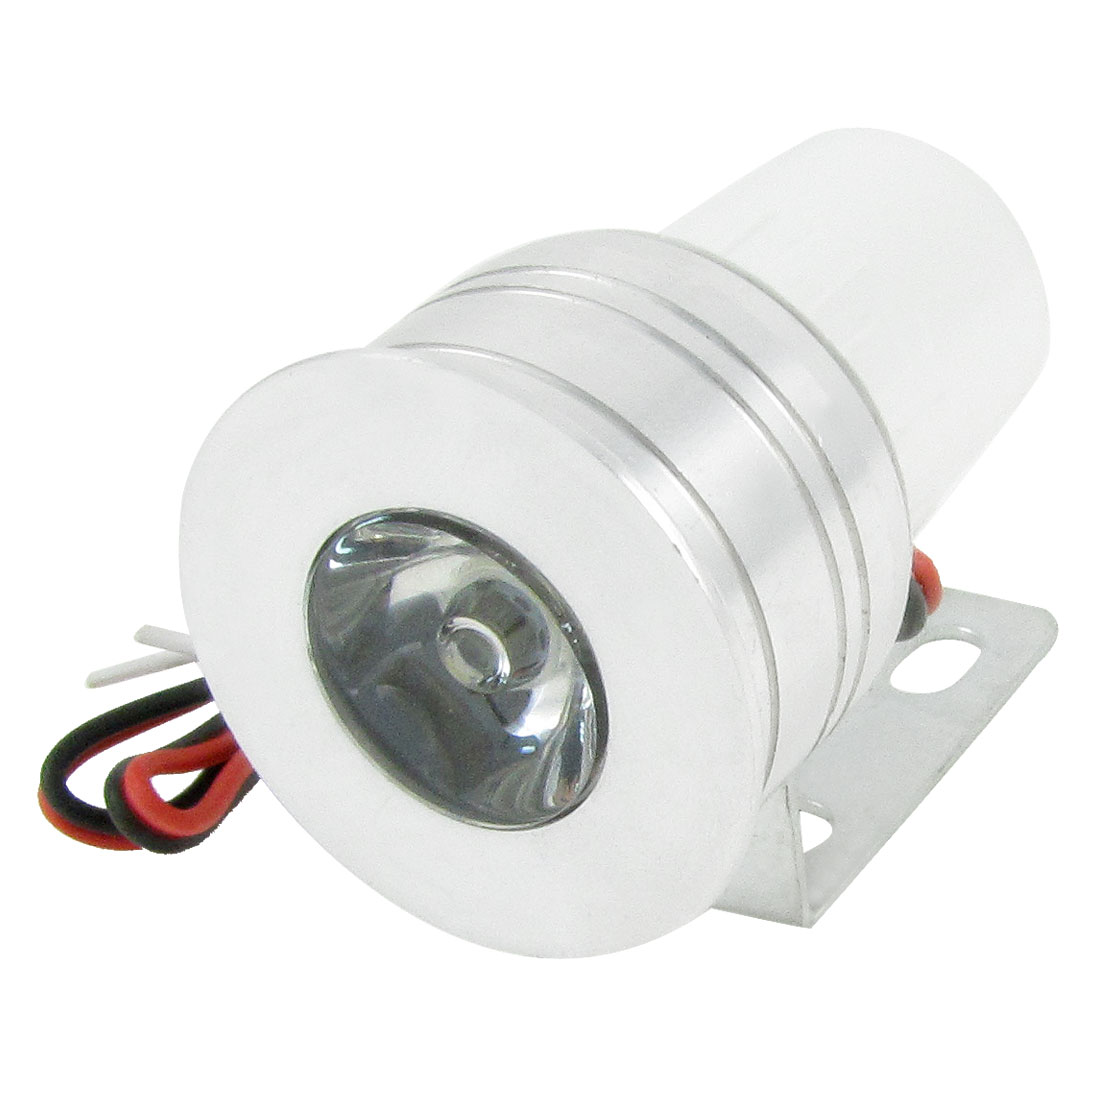 Motorcycle Aluminum Shell White LED Decorative Spot Light Lamp